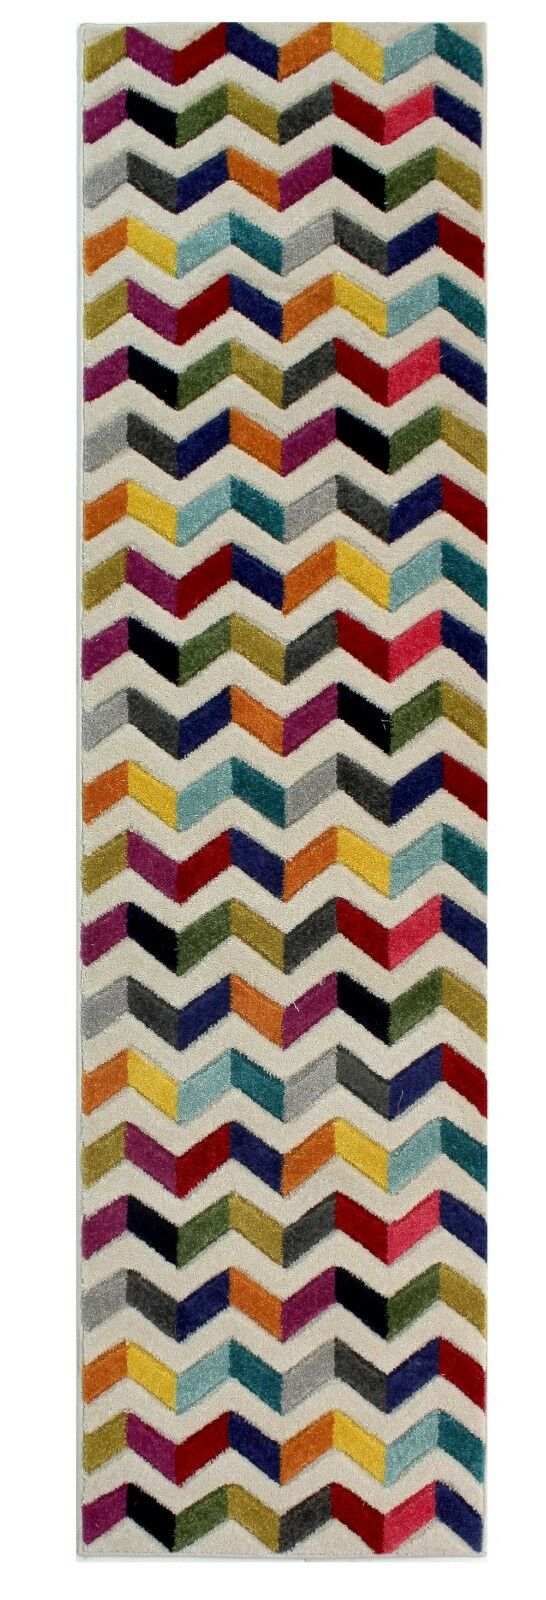 Modern Quality Quality Quality Handcarved Geometric Design Soft Rug Multi Colour Rainbow Carpet 6e8e3e